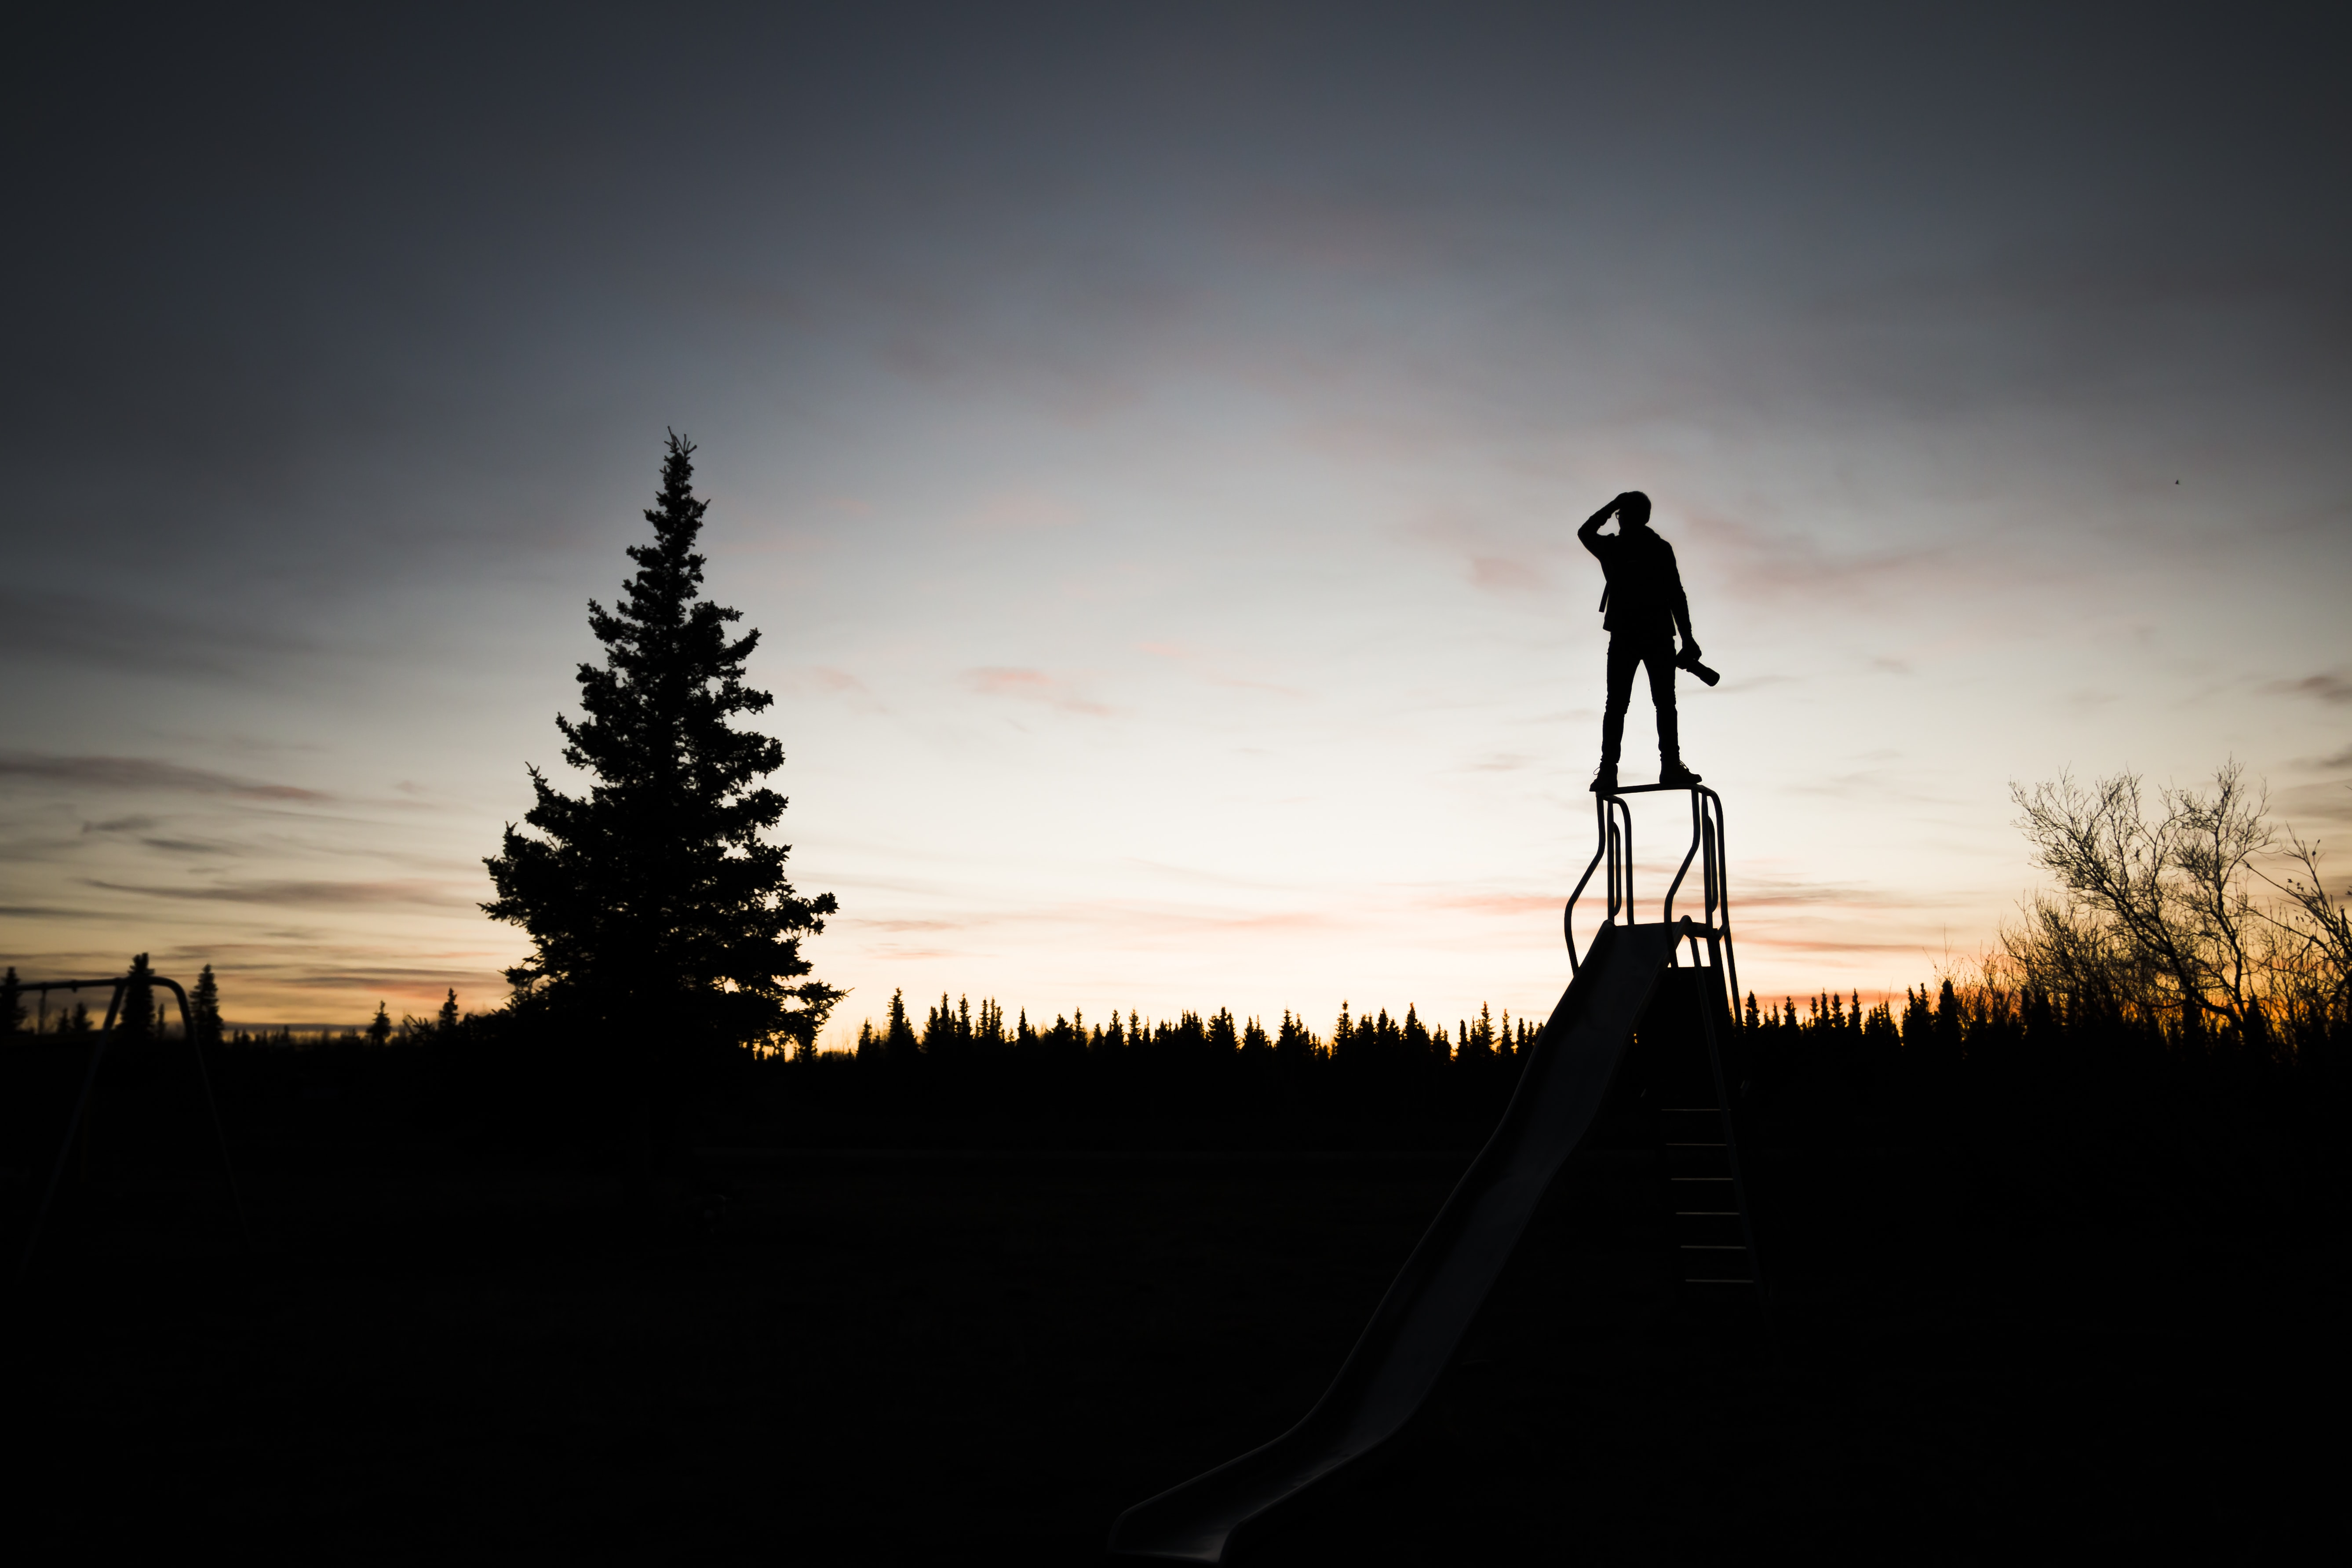 silhouette of a person standing on frame near tree during sunset